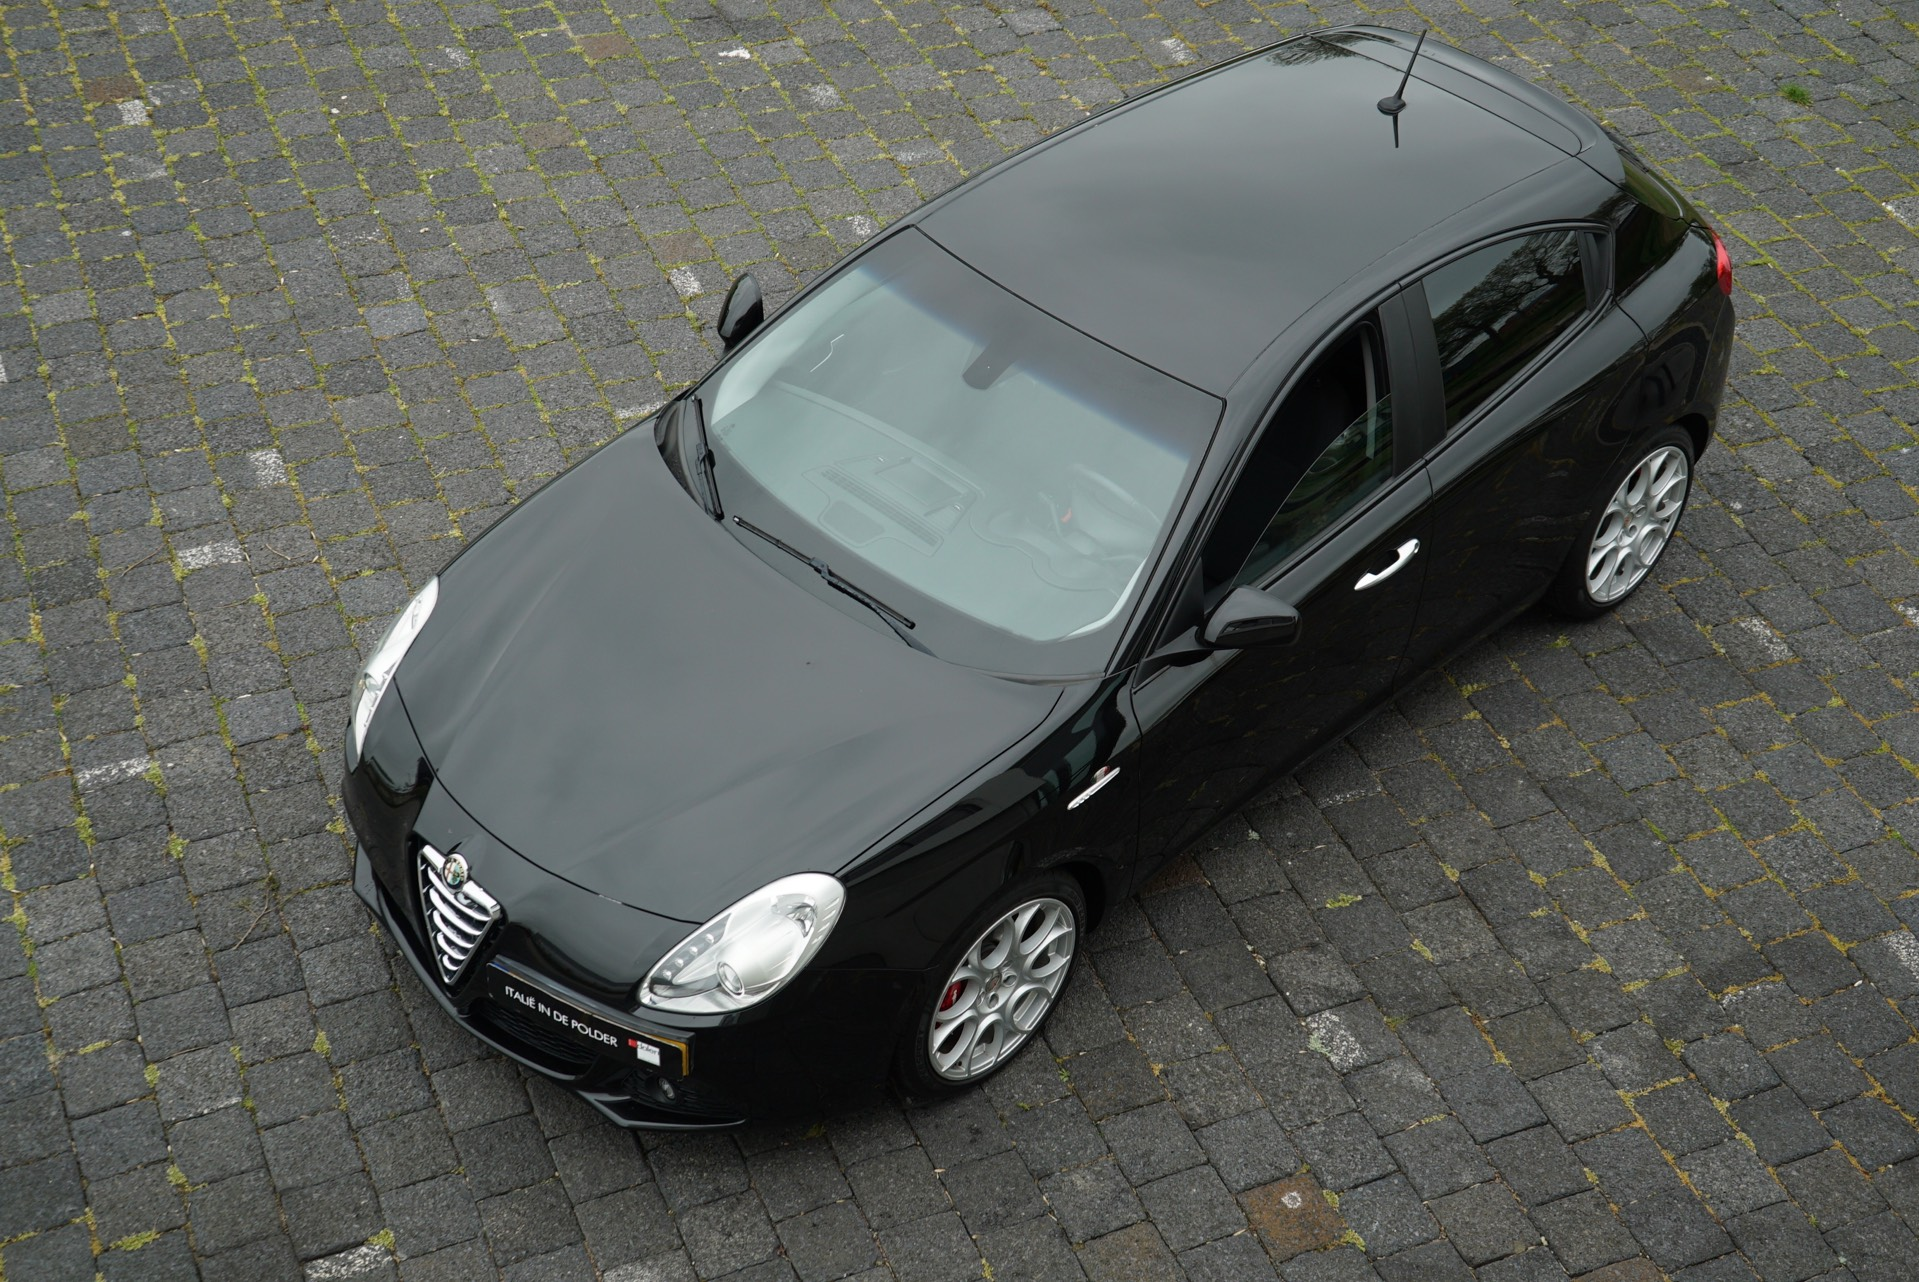 ALFA ROMEO GIULIETTA 1.4 TURBO DISTINCTIVE SPORT